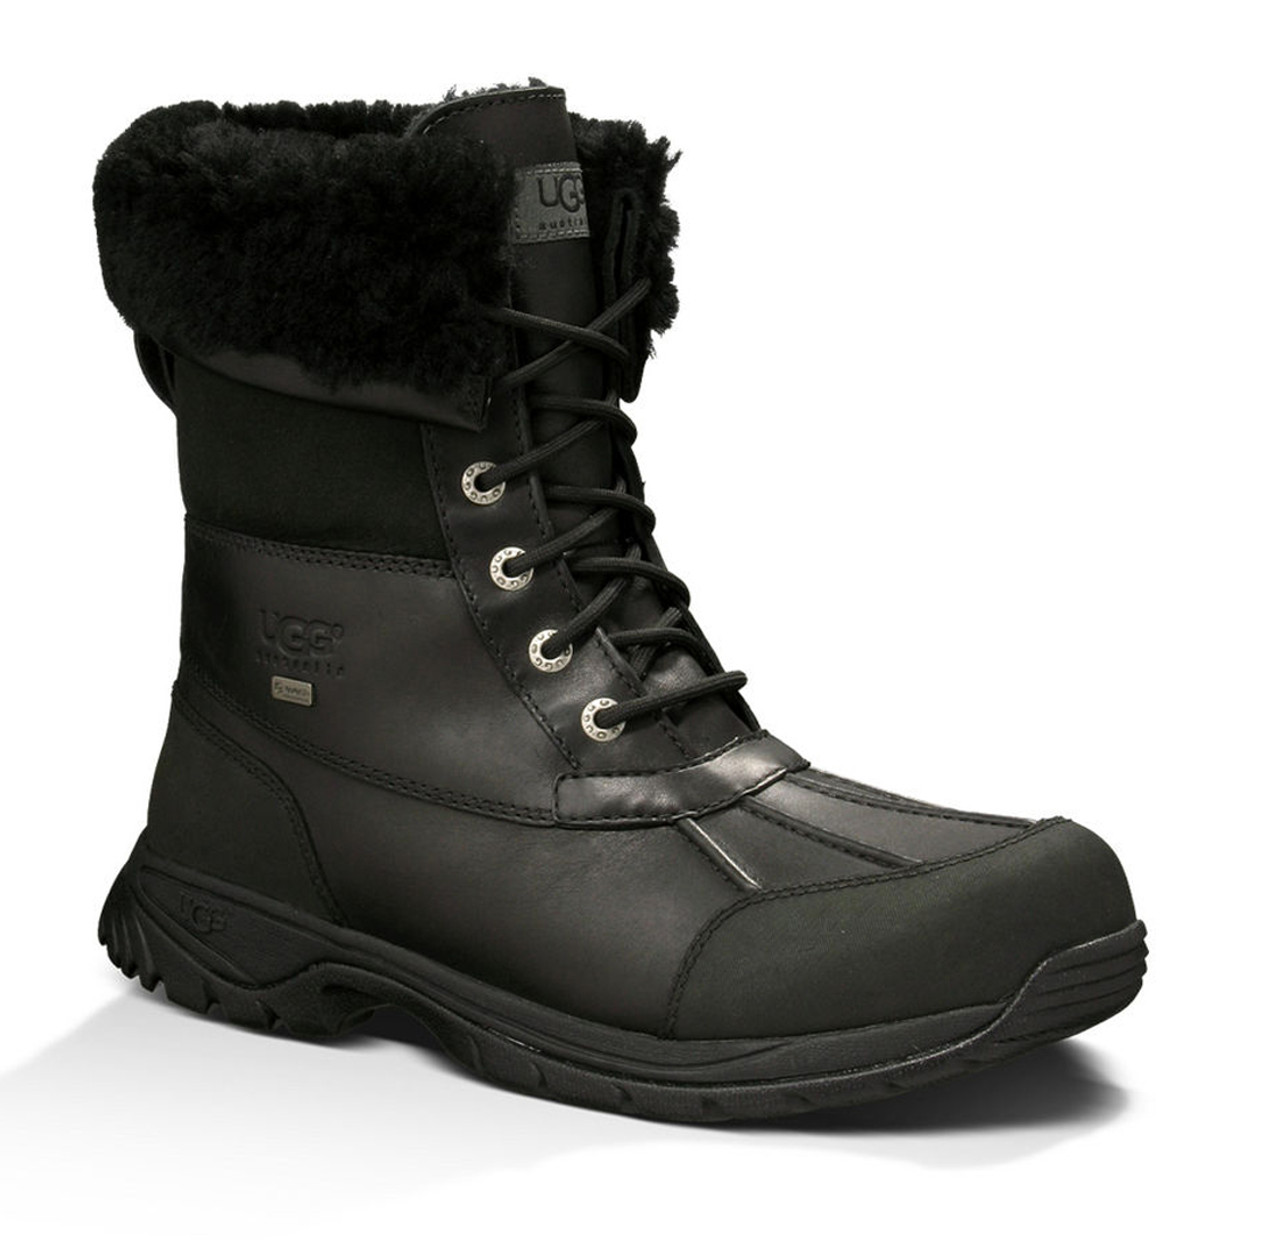 e39985403b5 UGG Men's Butte Waterproof Winter Boots Black